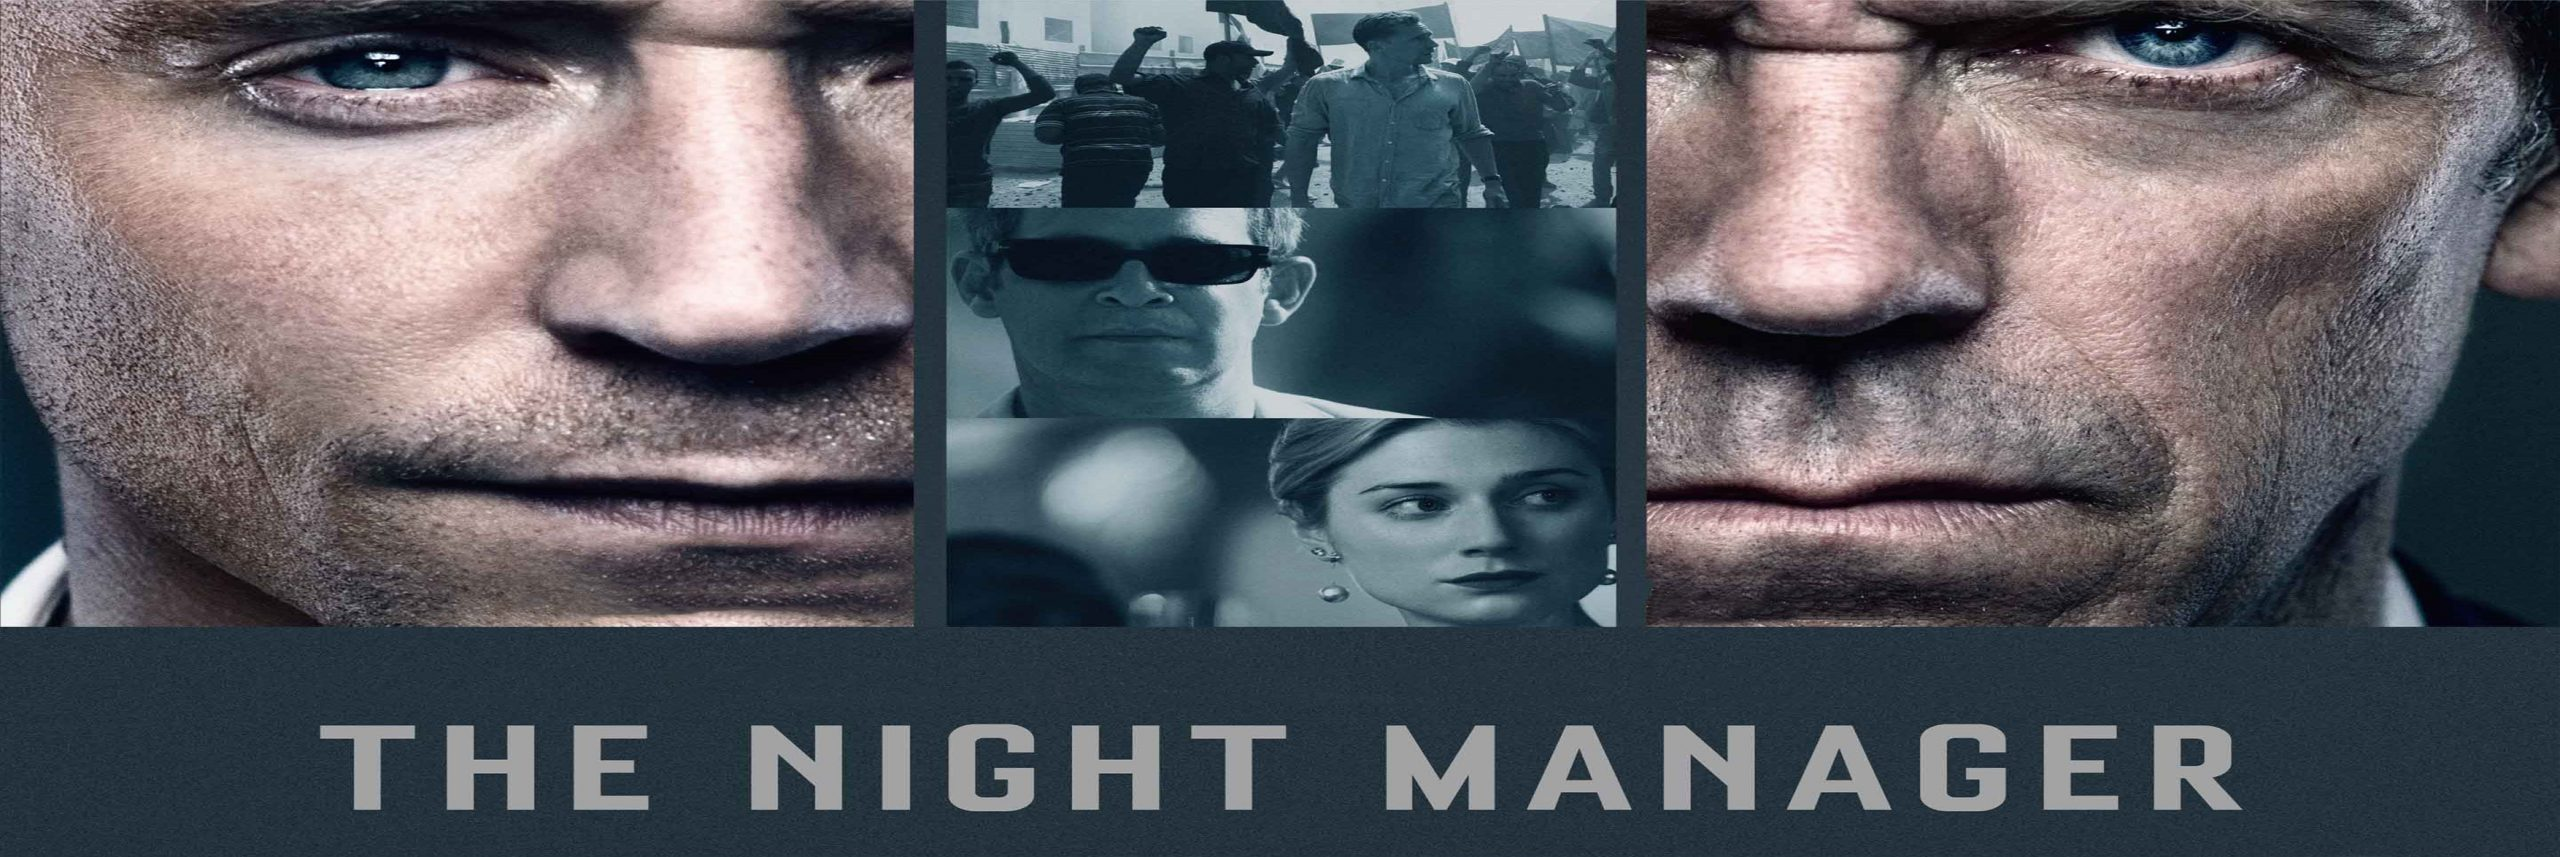 مدیر شیف شب – The Night Manager